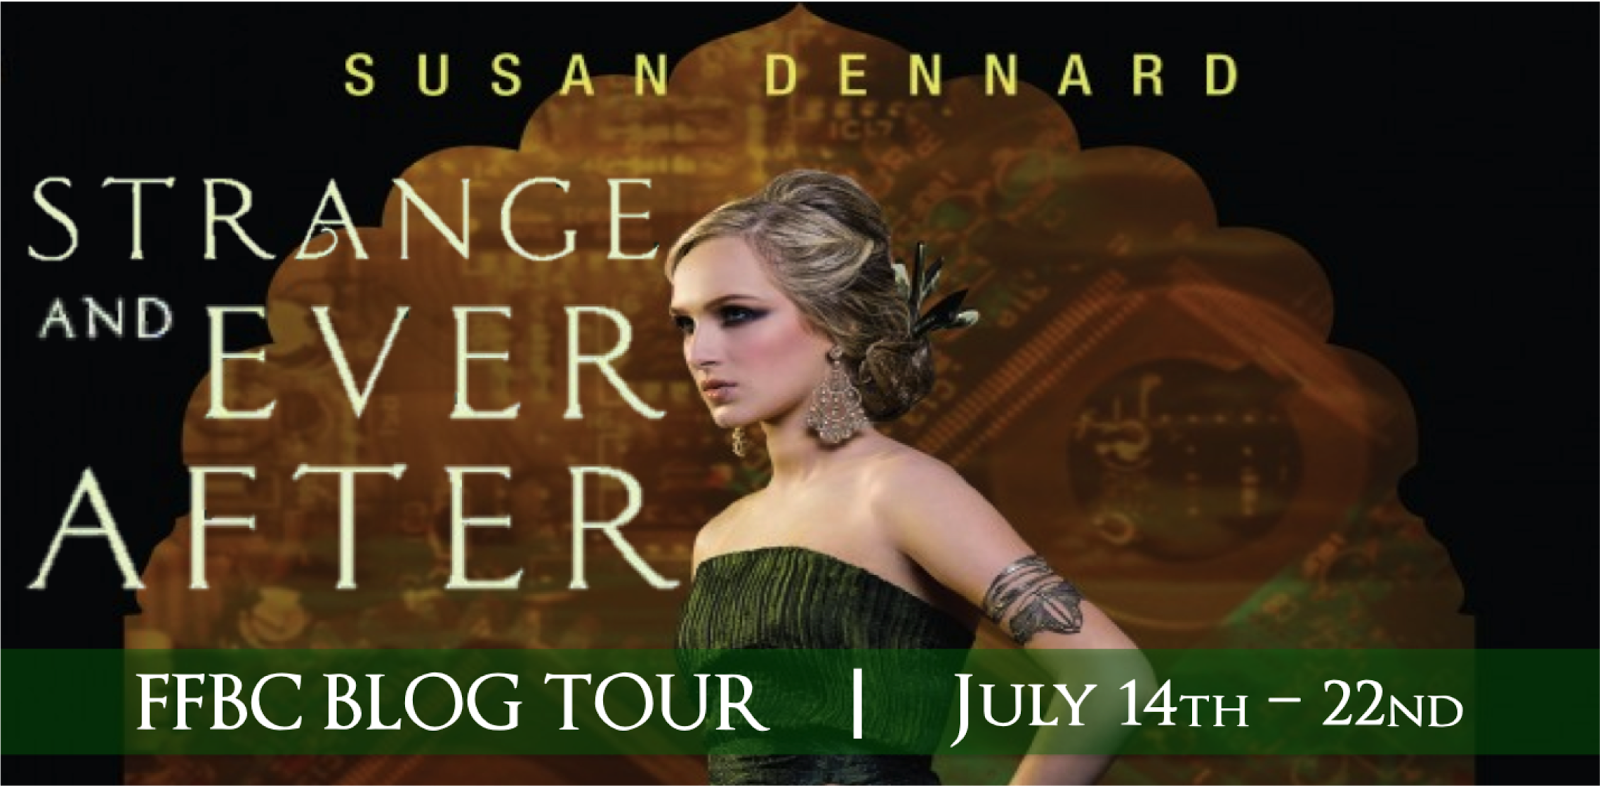 Strange and Ever After (Something Strange and Deadly #3)  by Susan Dennard  Tour Stop With Giveaway!